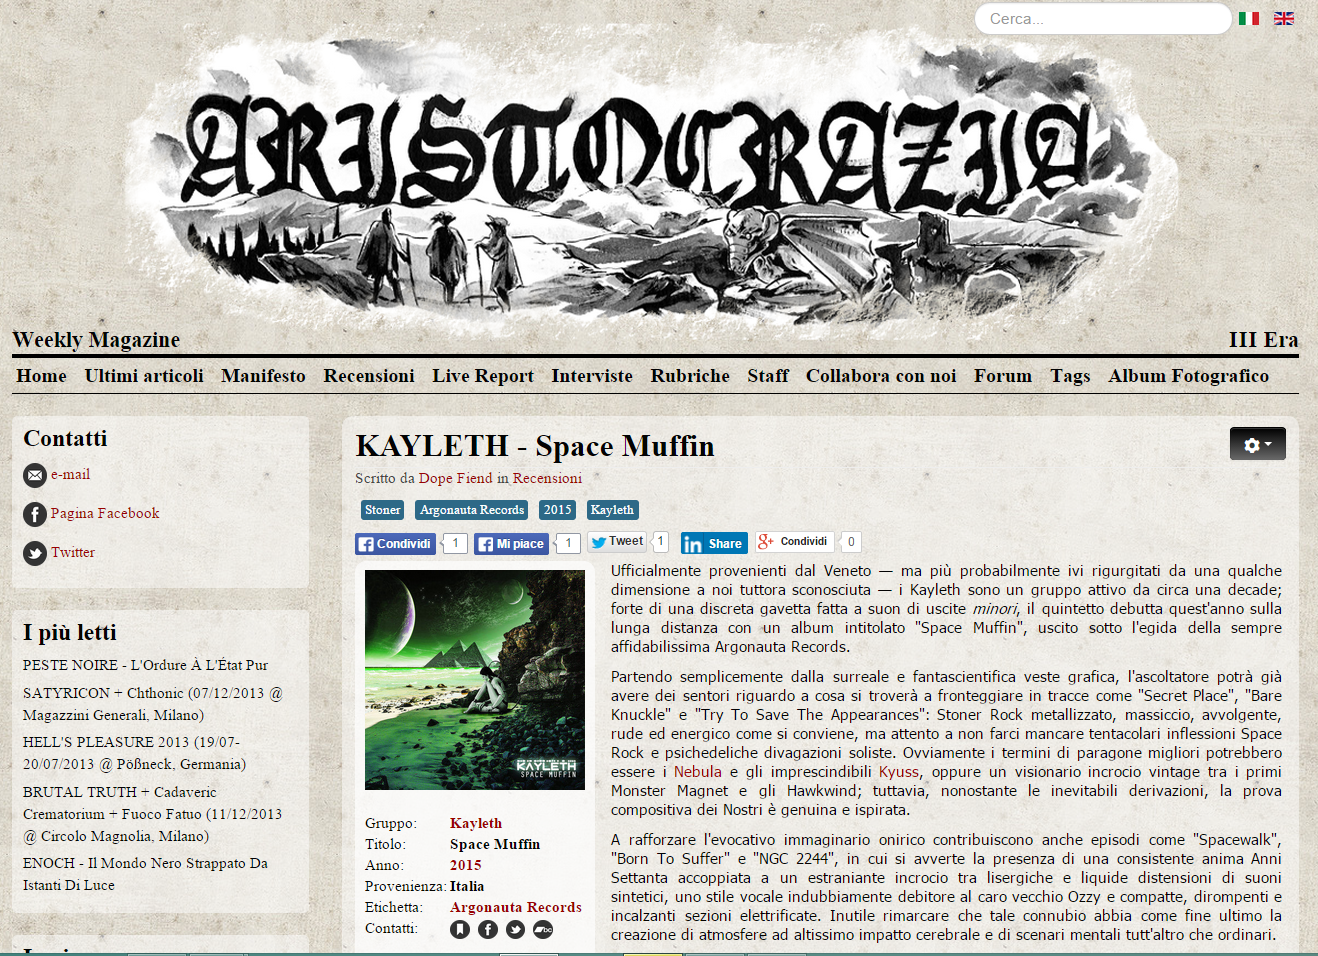 Review by Aristocrazia Webzine